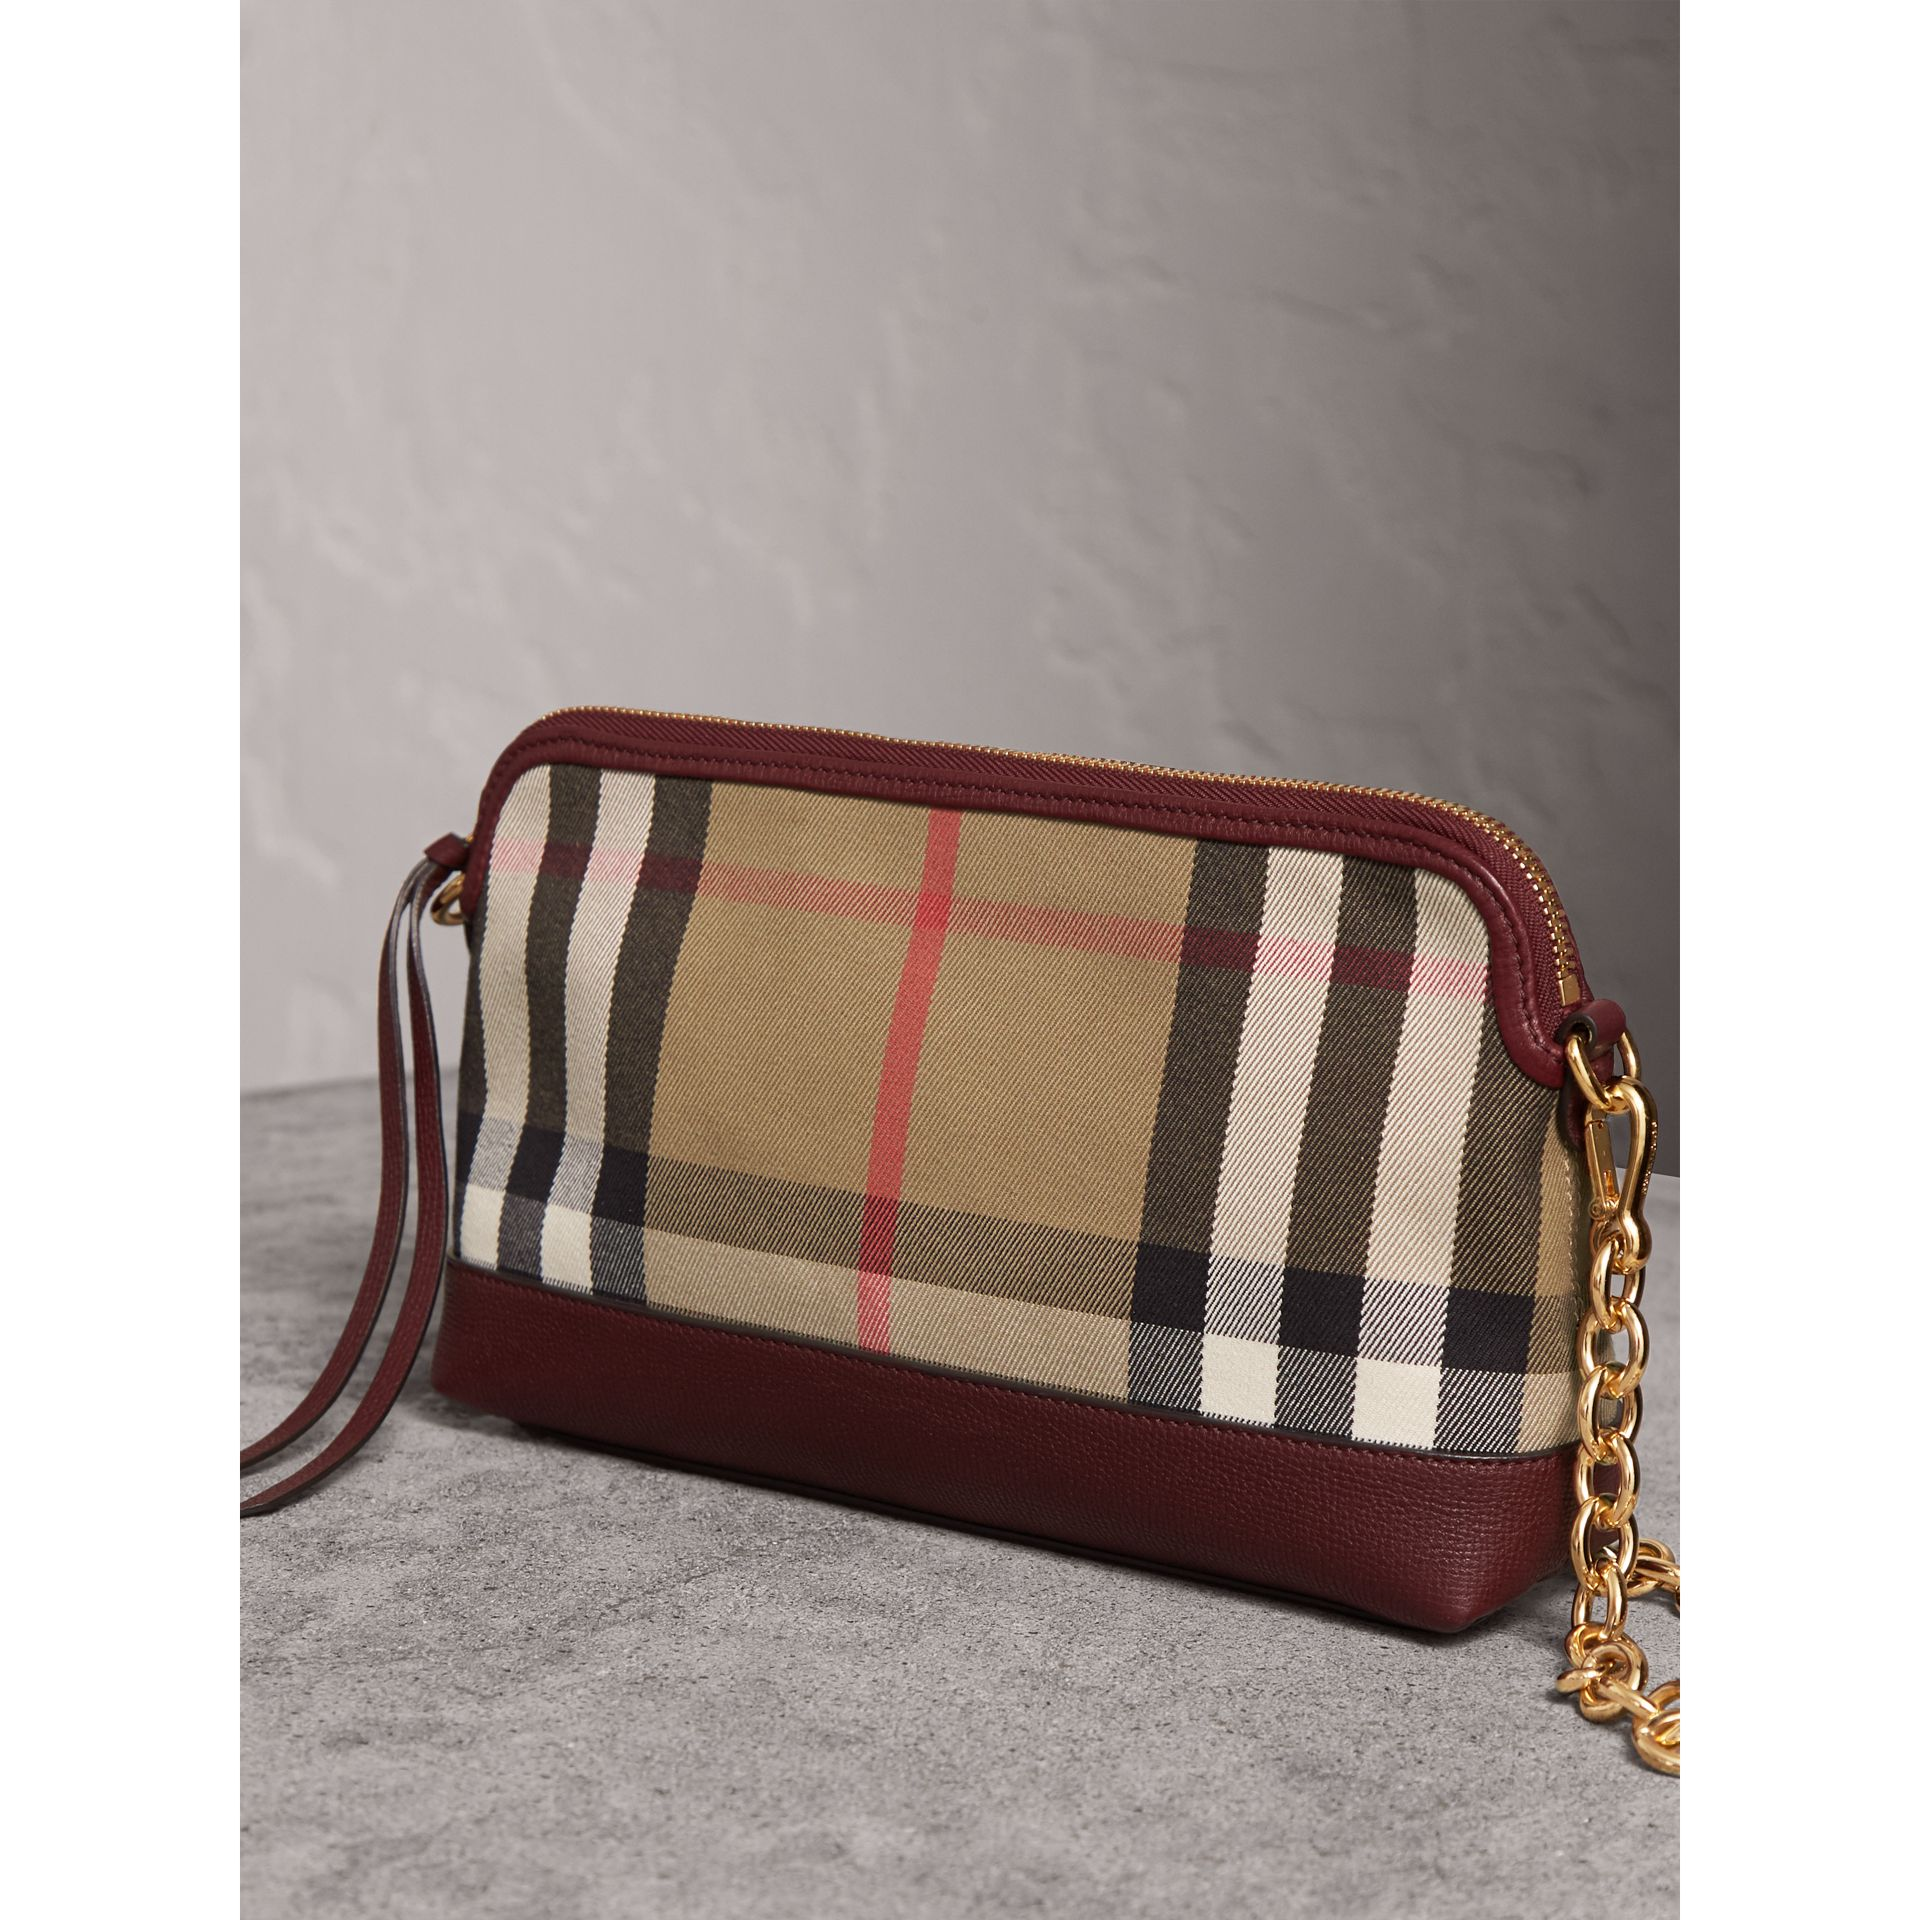 House Check and Leather Clutch Bag in Mahogany Red - Women | Burberry - gallery image 7